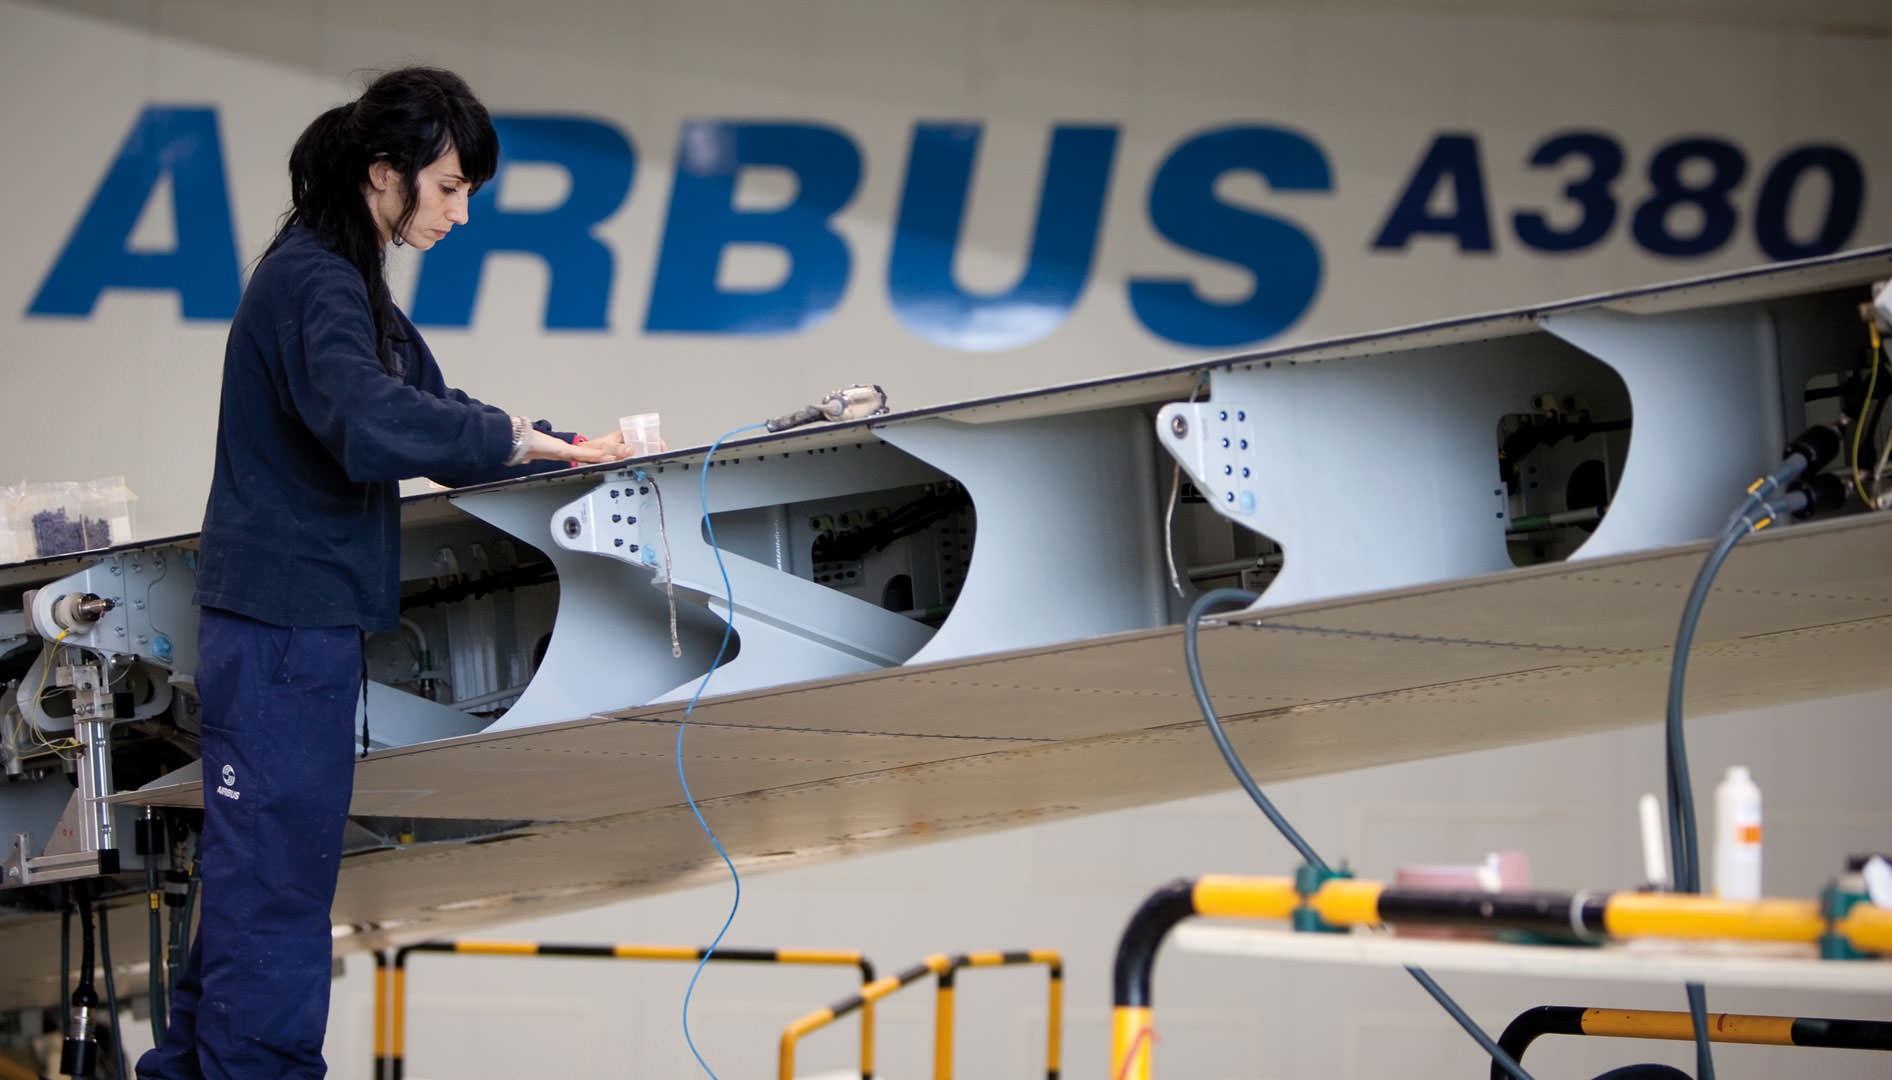 Industrial operatives working at the Airbus plant in Puerto Real.